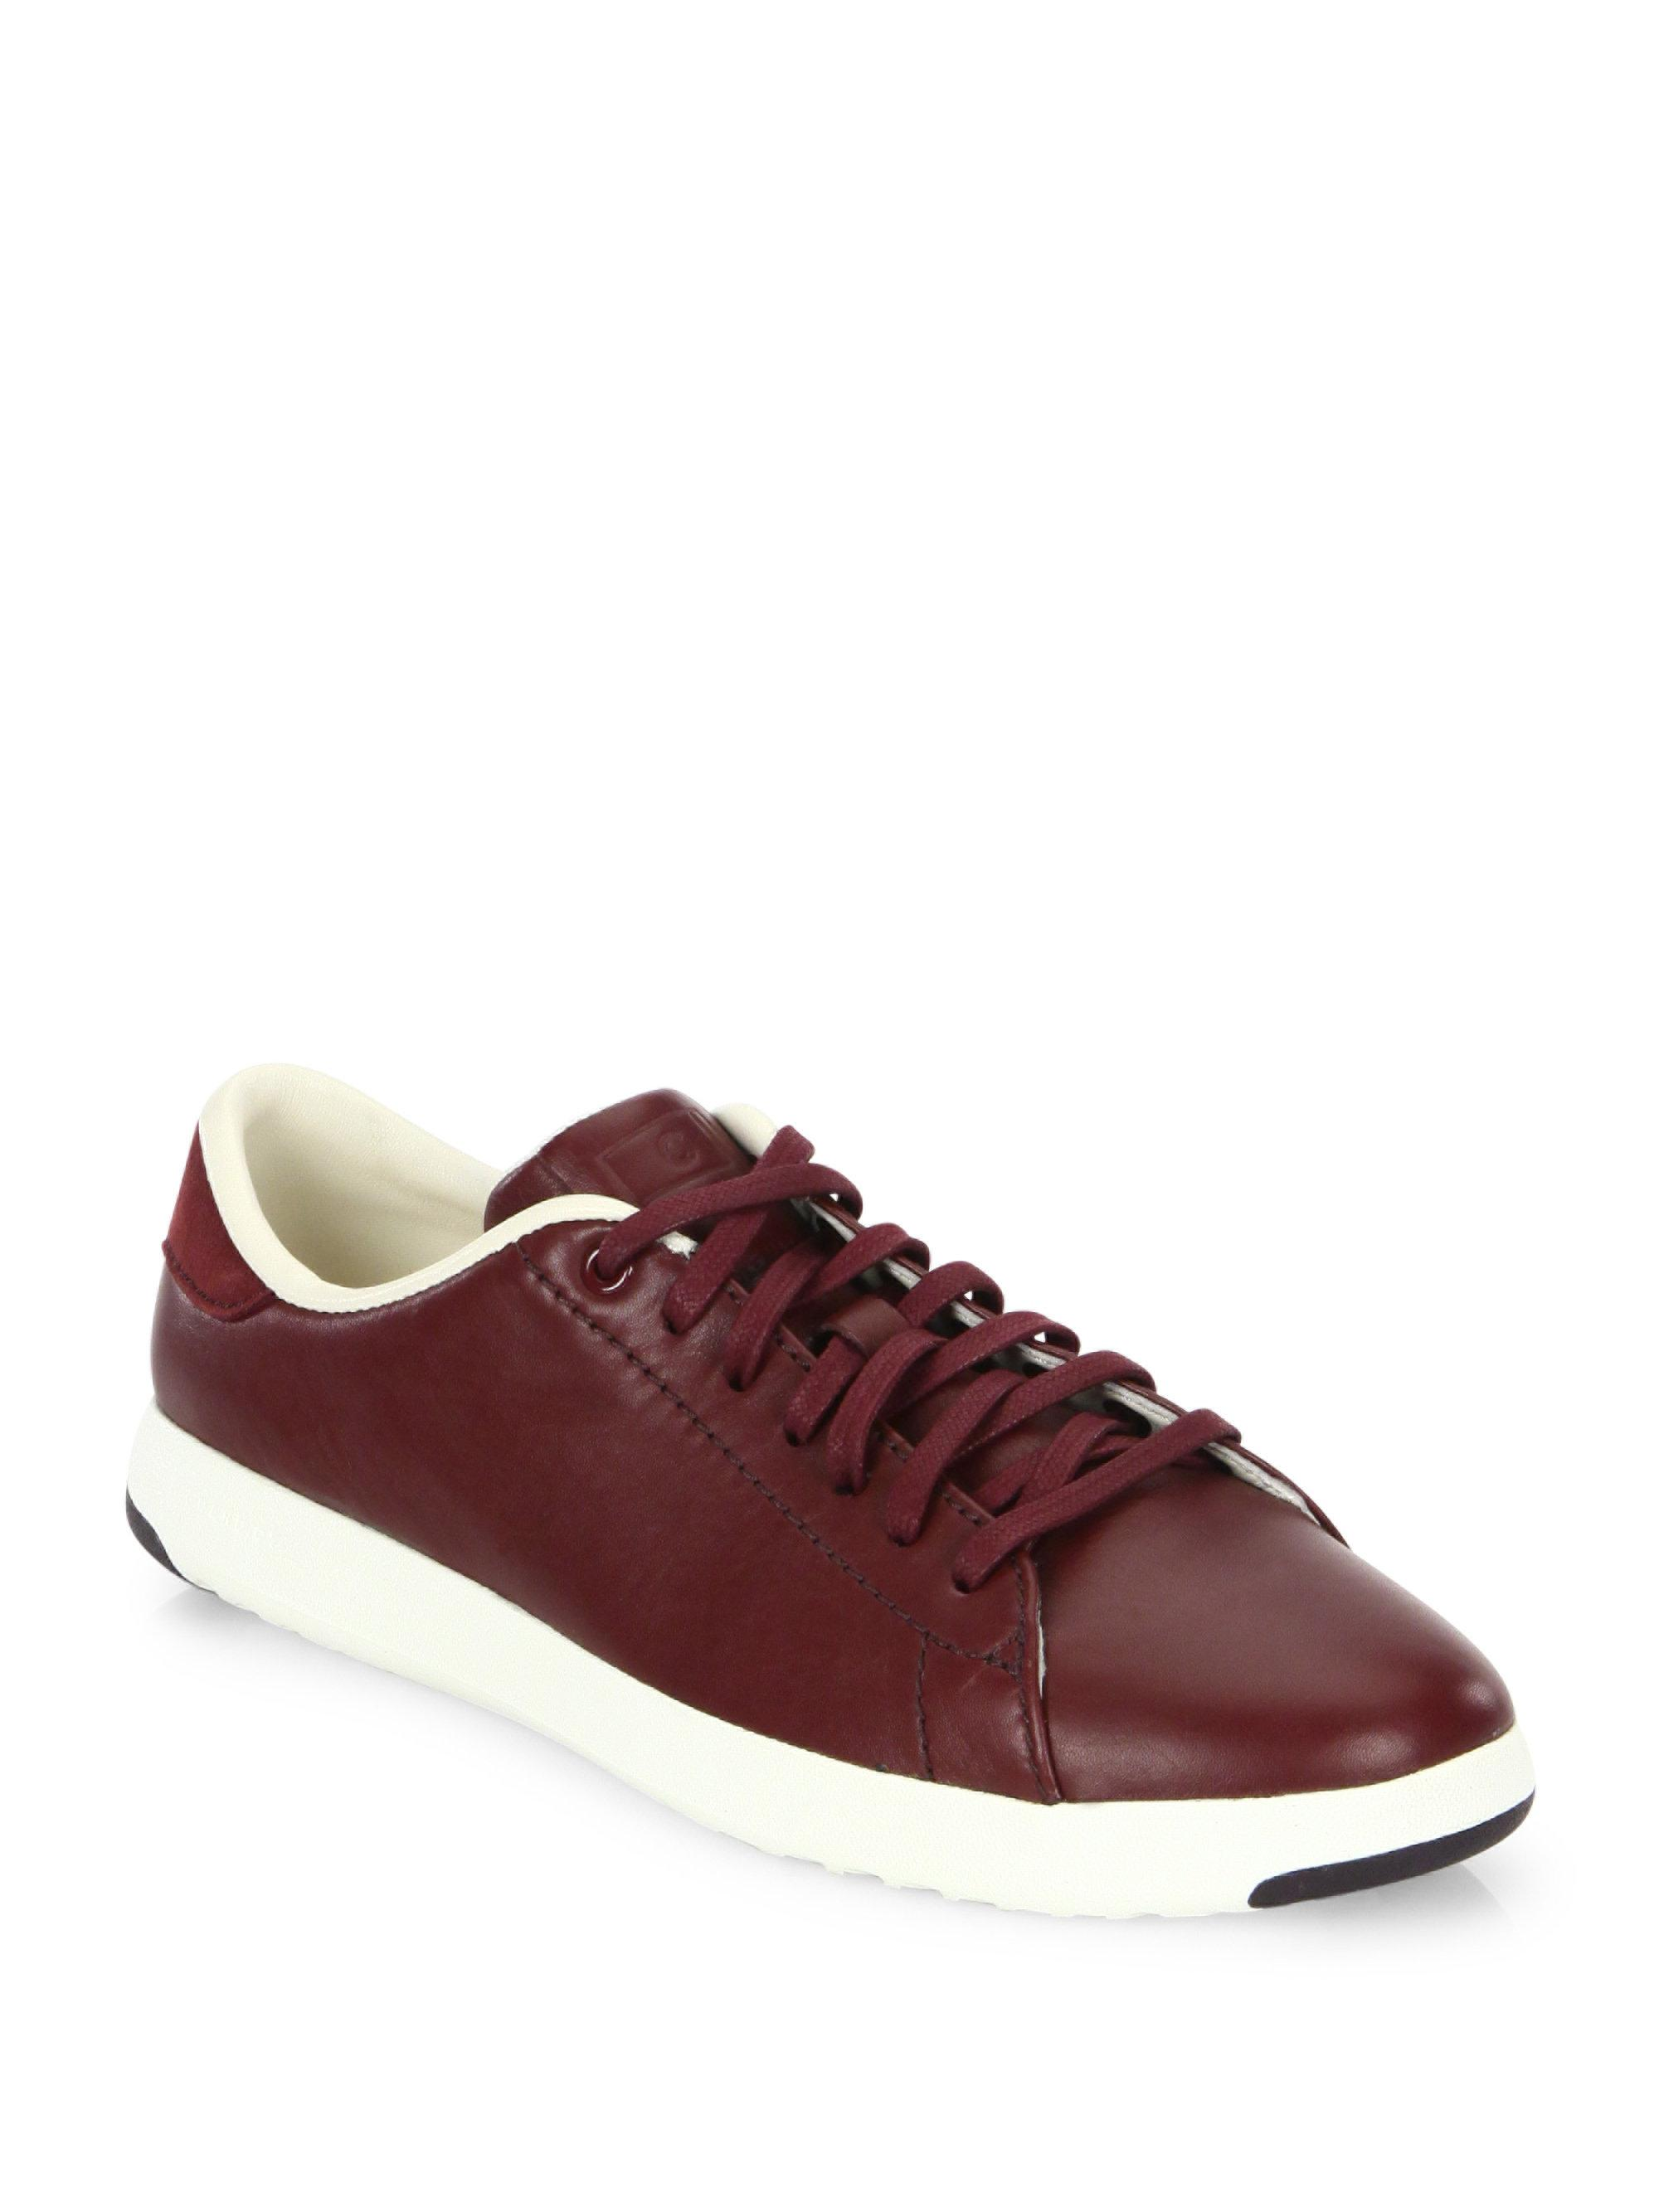 Cole Haan. Women's Grandpro Leather Tennis Trainers